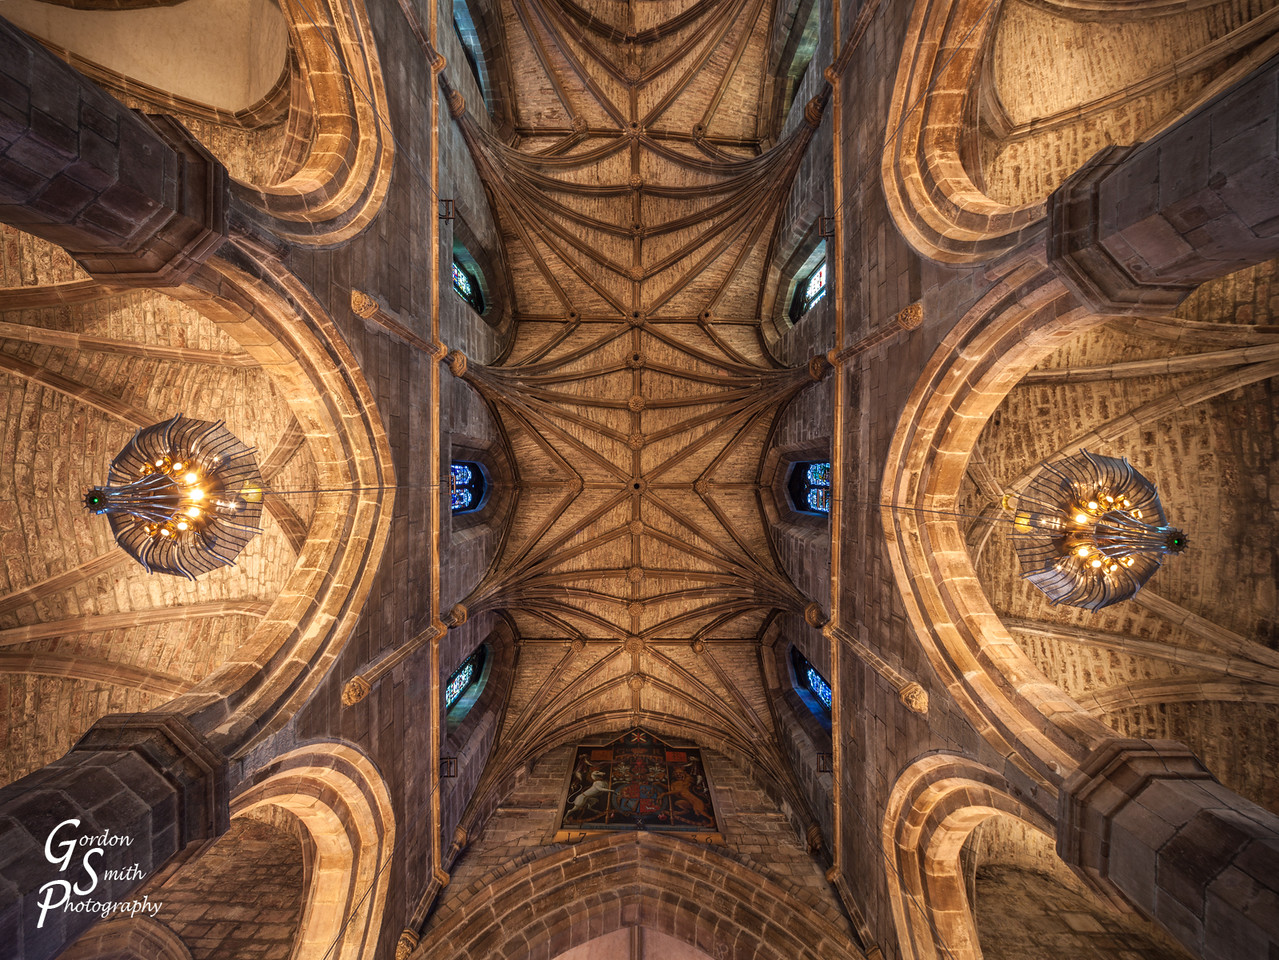 ceiling with columns, vaults and stained glass